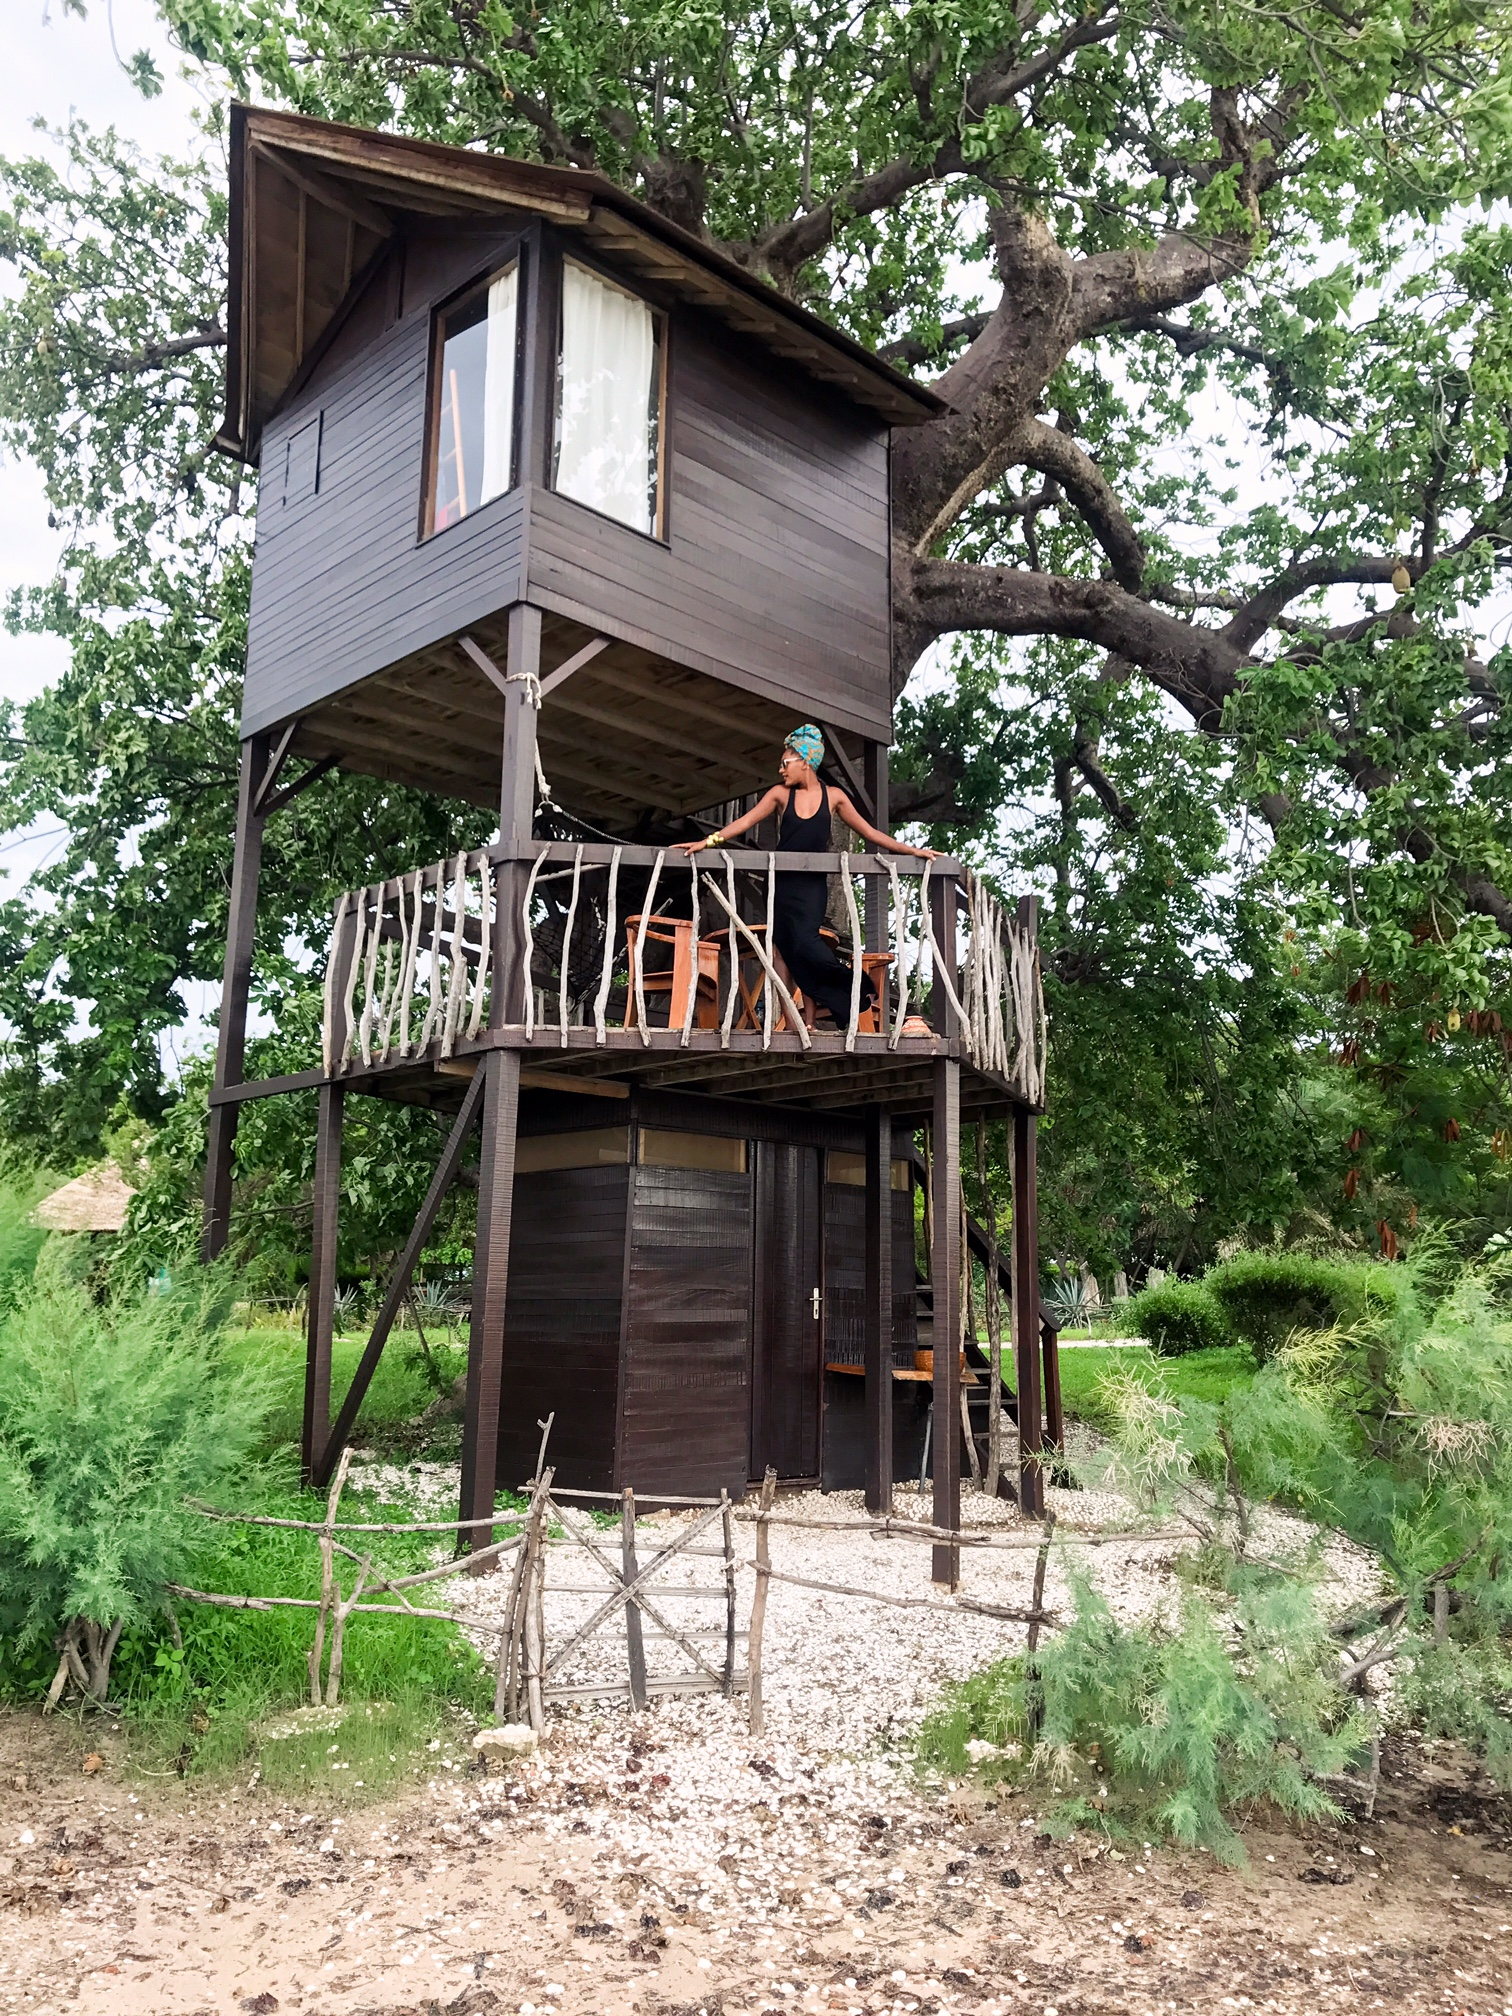 Jakiya in treehouse.JPG